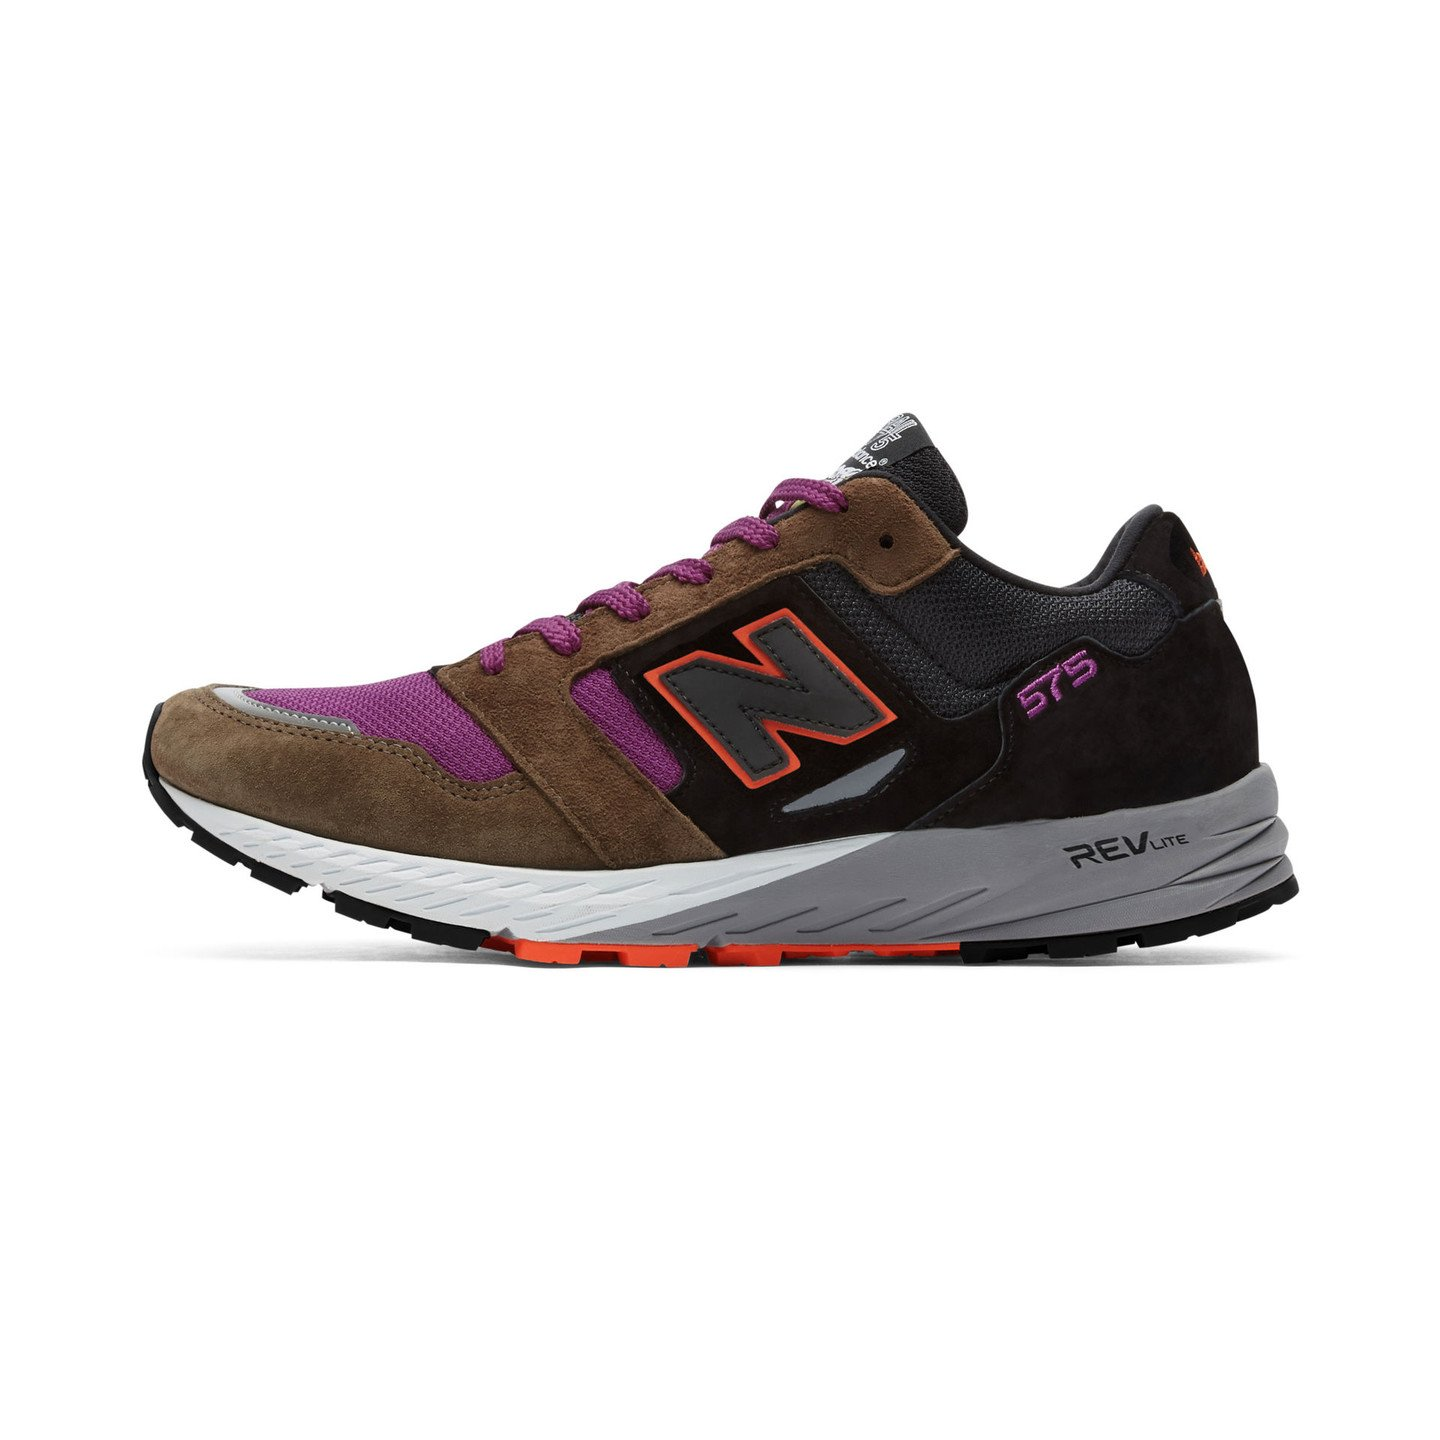 New Balance MTL575 KP - Made in England Dark Olive / Orange / Plum MTL575KP